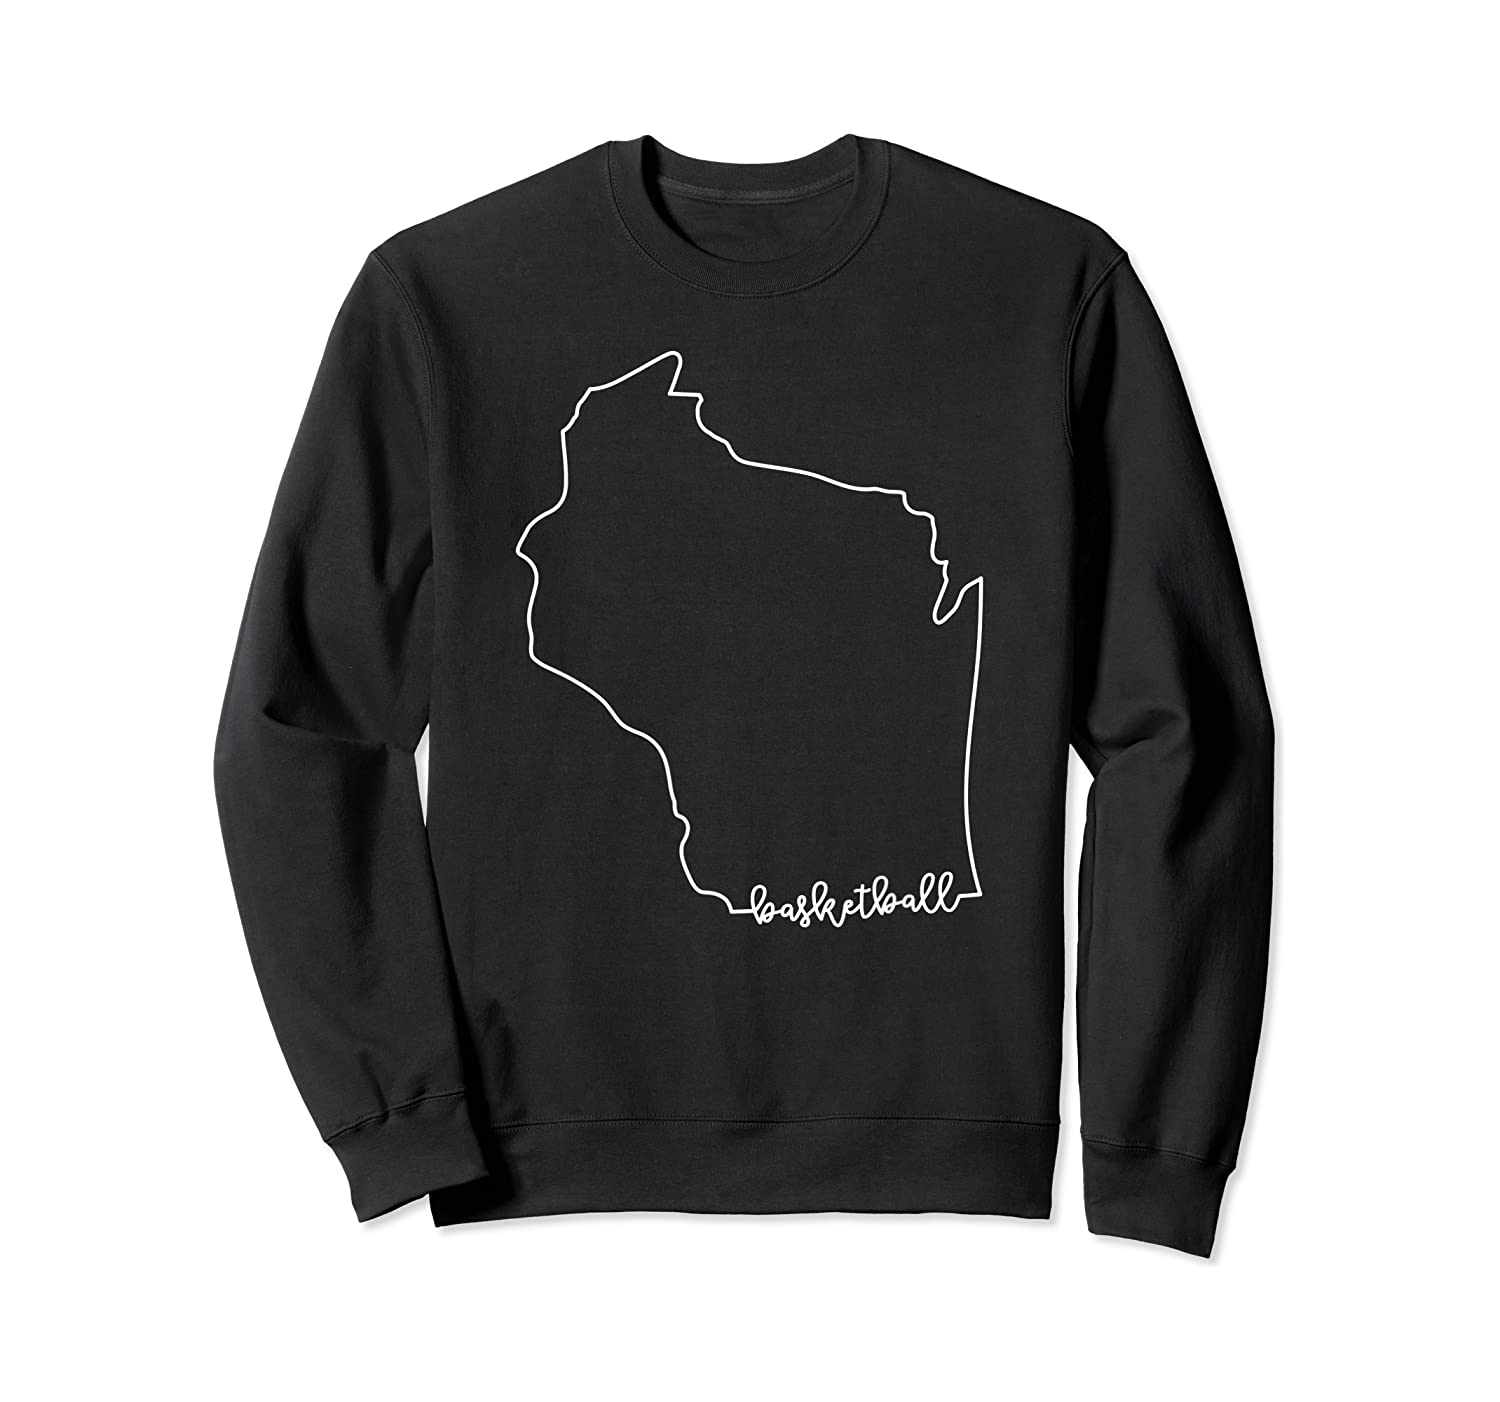 State Of Wisconsin Outline With Basketball Script Acj299b T-shirt Crewneck Sweater